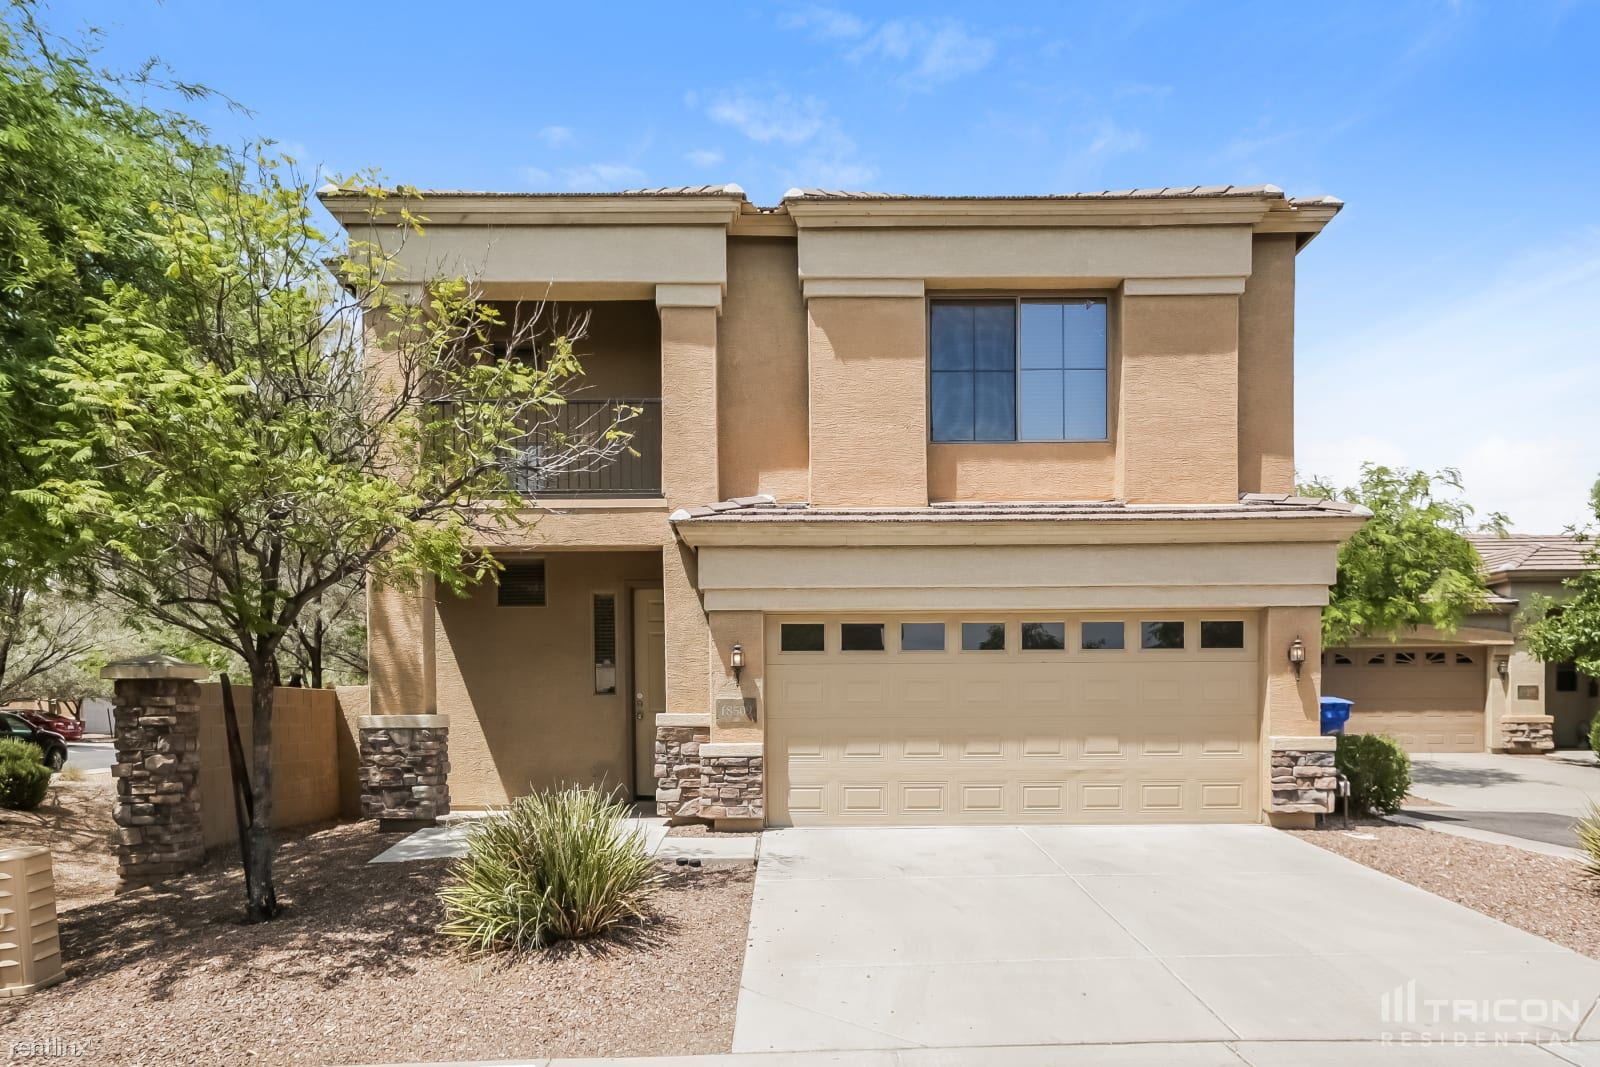 18509 N 20th Place - 2699USD / month